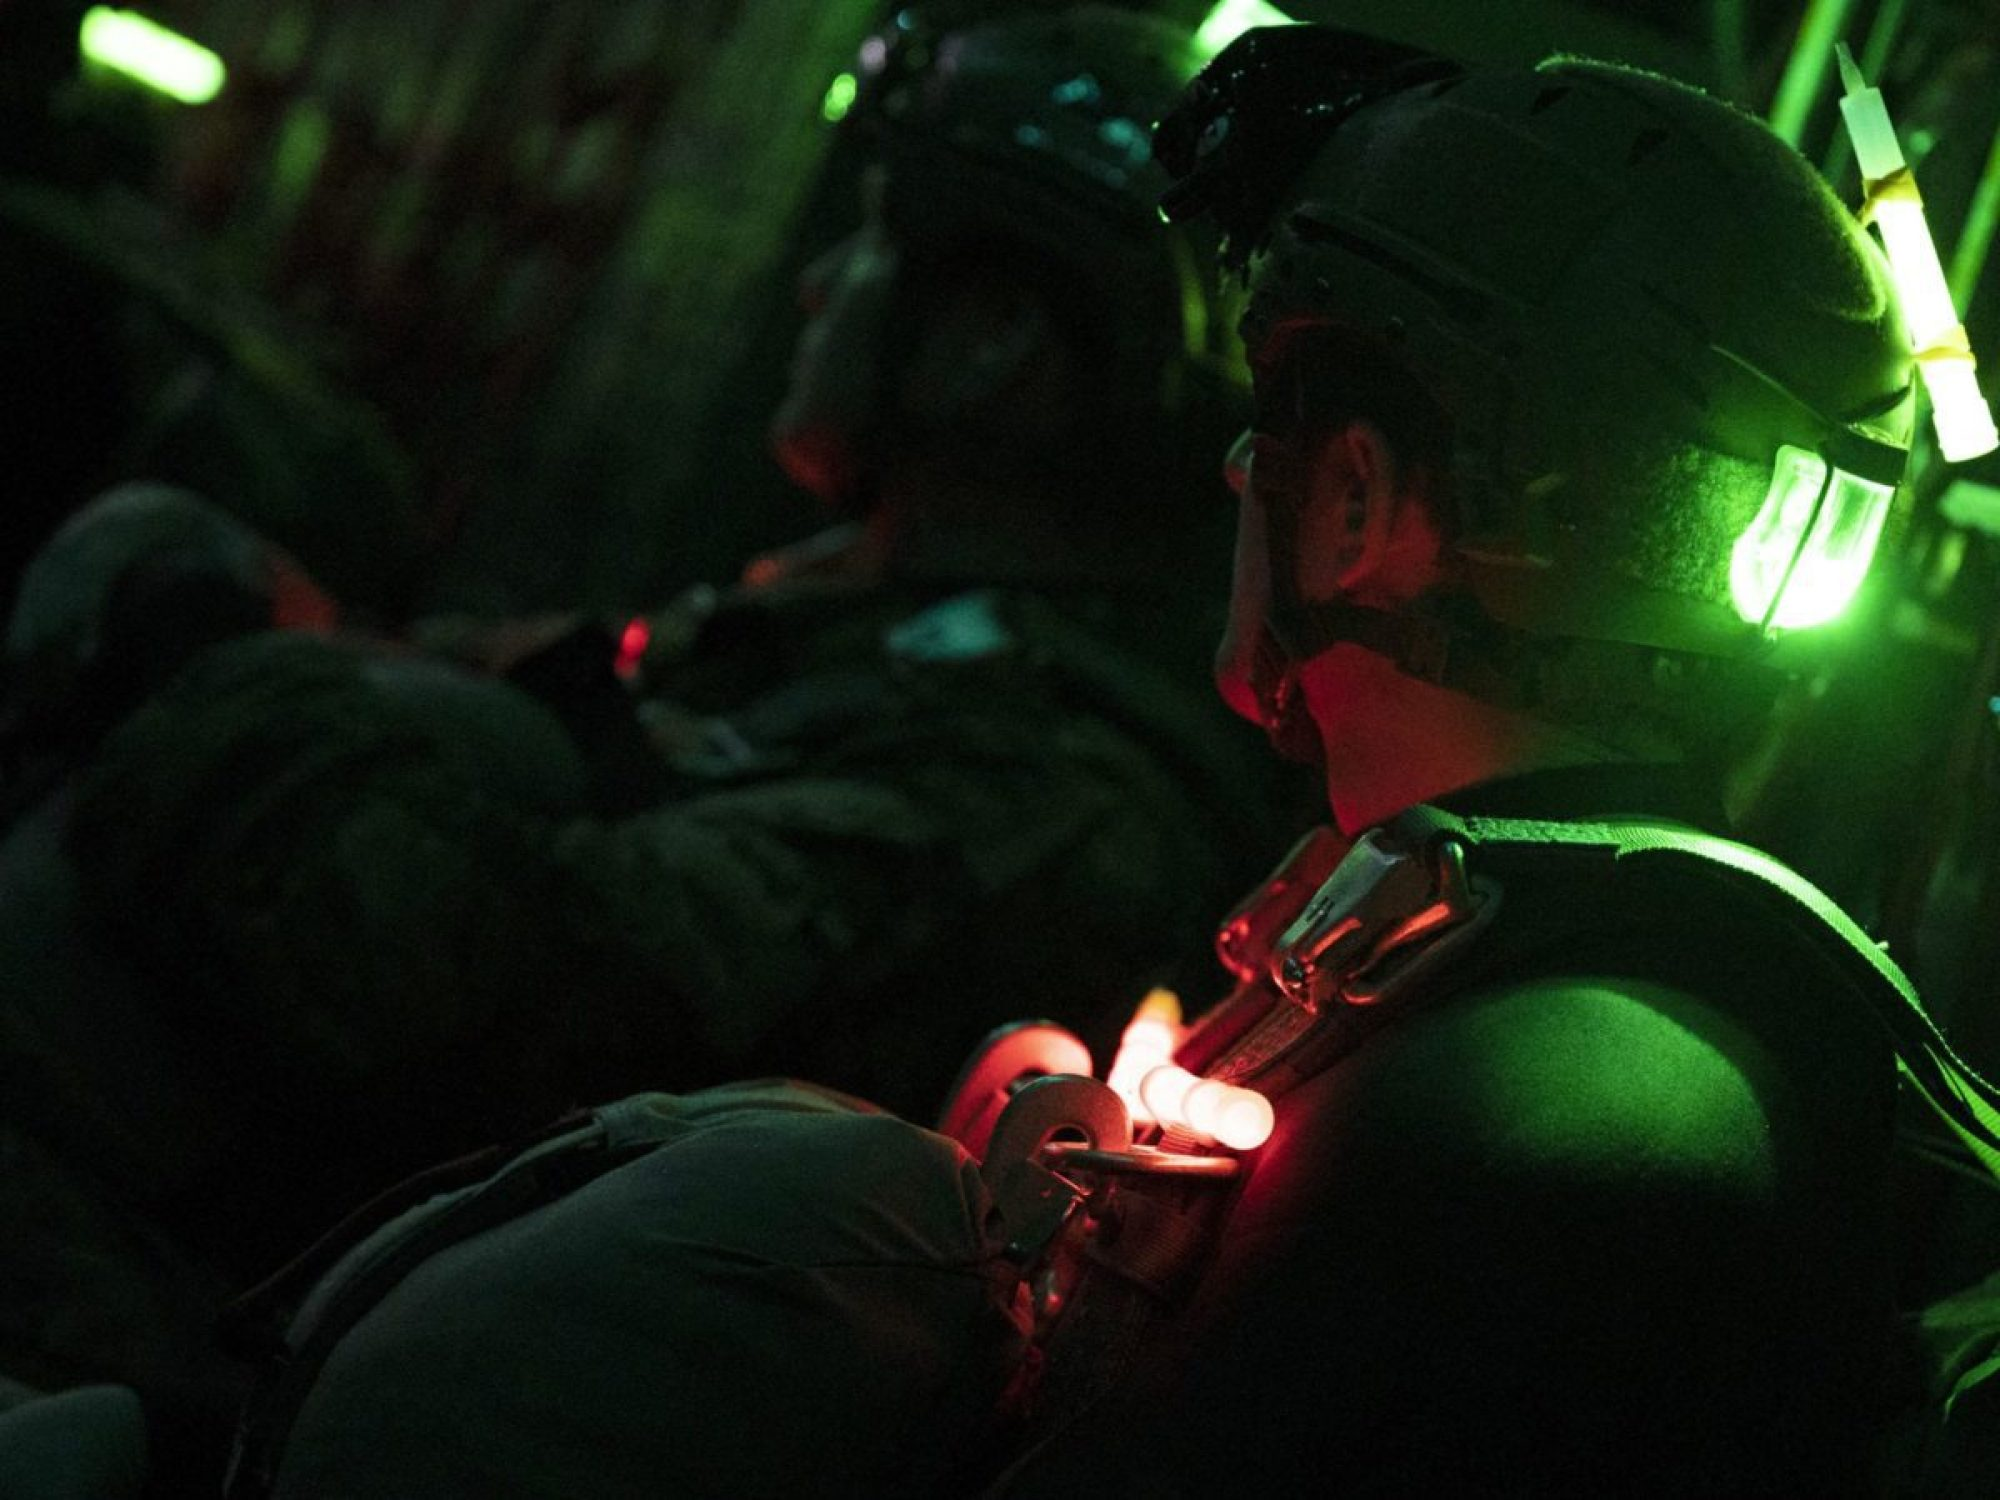 U.S. Air Force Special Tactics operators assigned to the 24th Special Operations Wing prepare for a night insertion from an MC-130H Combat Talon II assigned to the 15th Special Operations Squadron as a part of night insertion training during Emerald Warrior 21.1 at Hurlburt Field, Florida, Feb. 24, 2021. (U.S. Air Force photo by Senior Airman Edward Coddington)